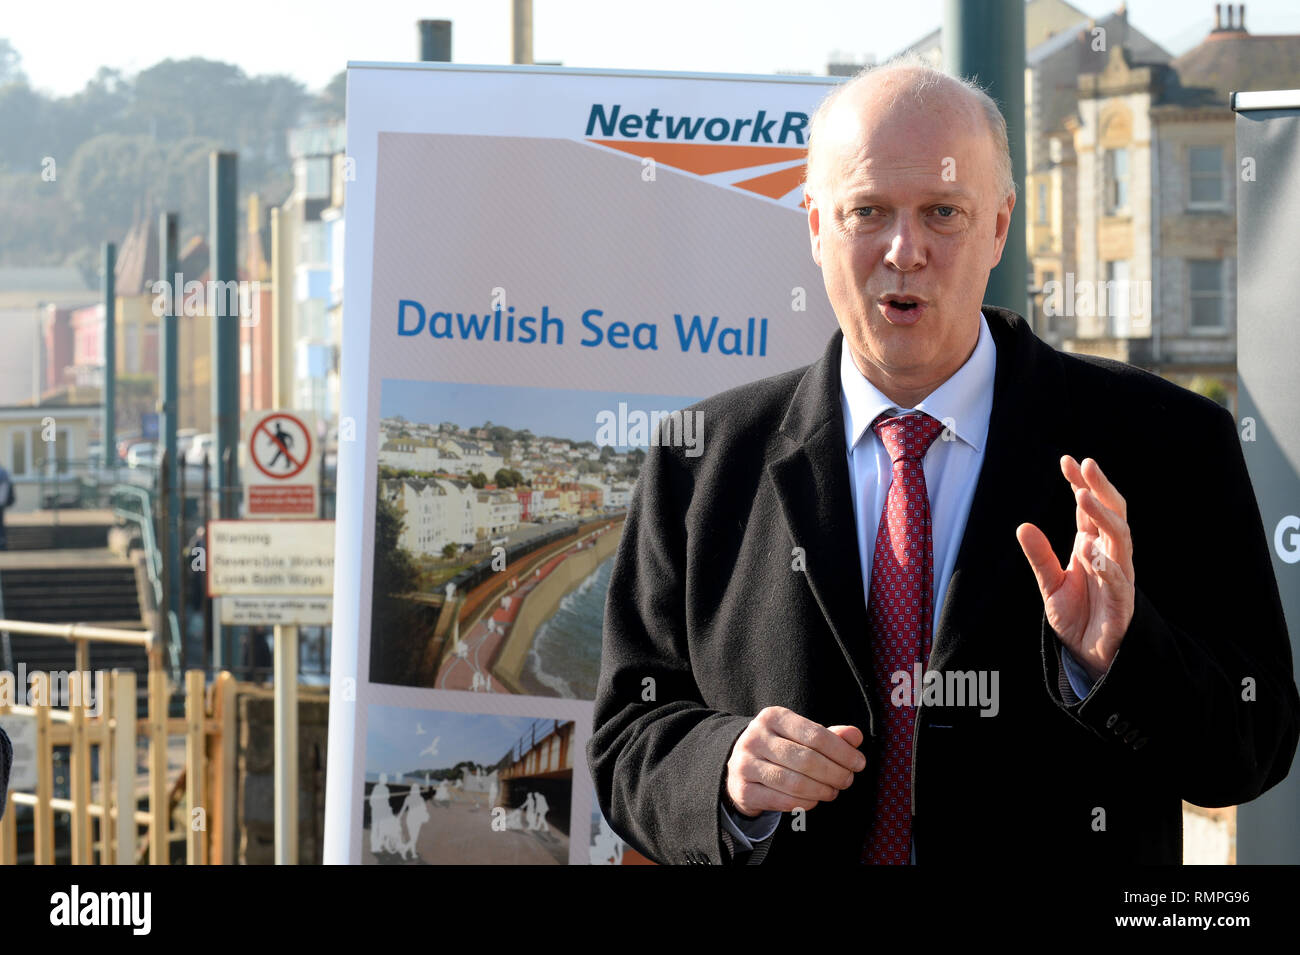 Dawlish, UK. 15th Feb, 2019. 15/02/2019  MP Chris Grayling visiting Dawlish. - Photo mandatory by-line: Andy Styles - Tel: 01626 872731 - Mobile: 07834214253 TQAS20190215B-012_C Credit: Andy Styles Photography/Alamy Live News - Stock Image